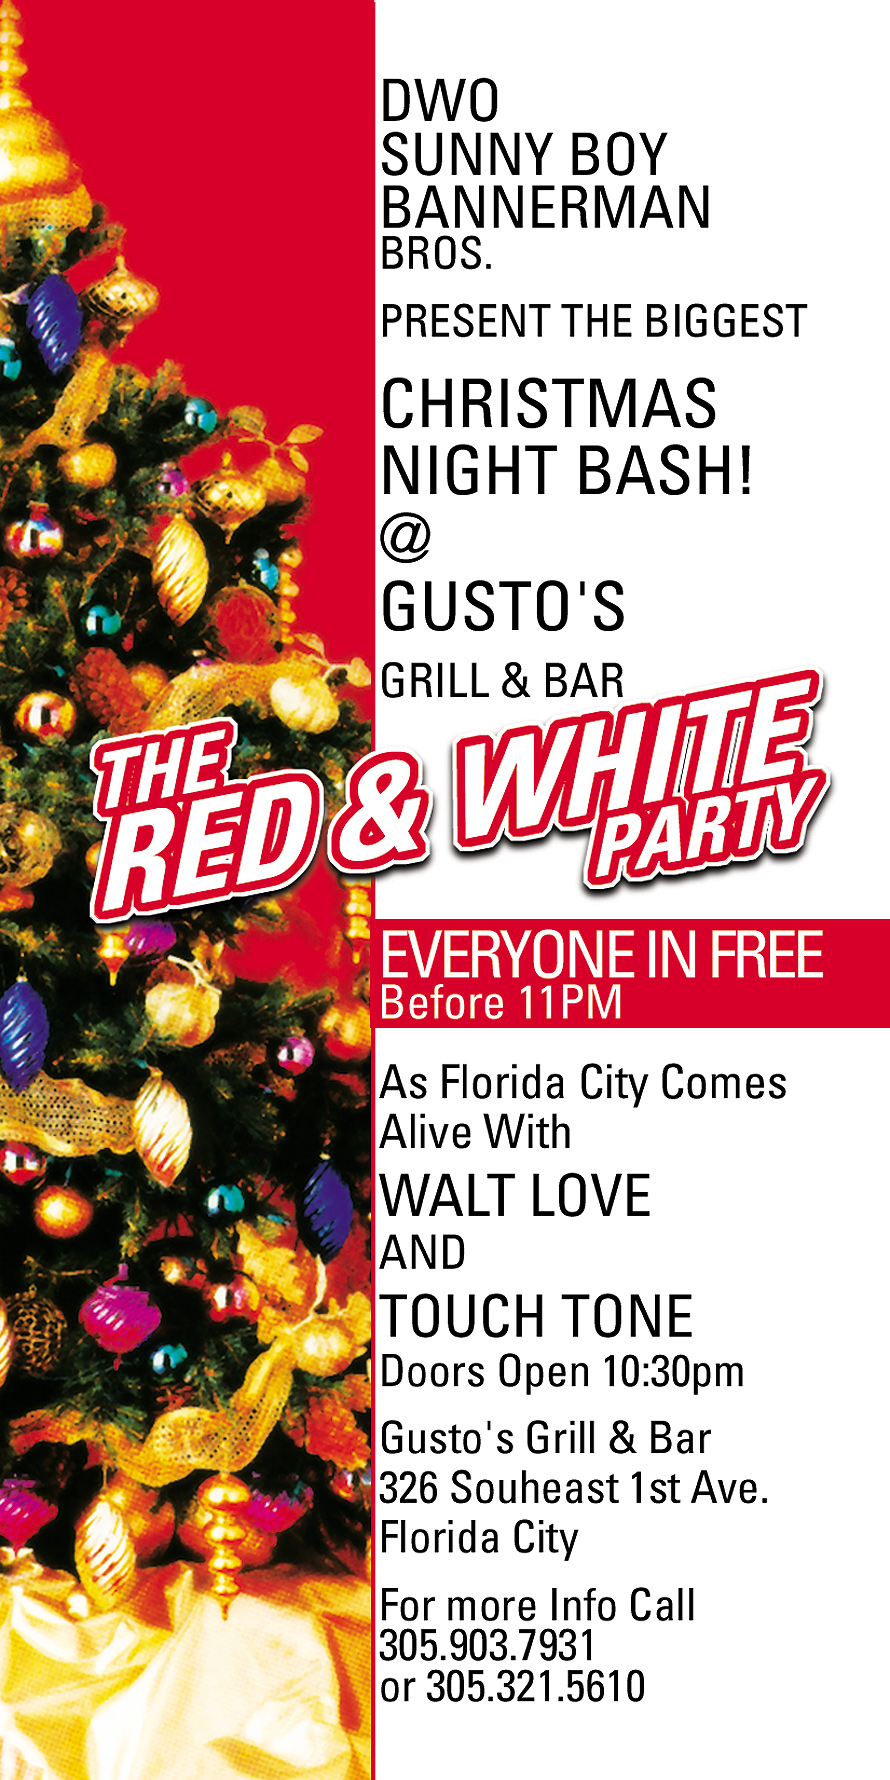 The Red and White Party at Gusto's Grill and Bar